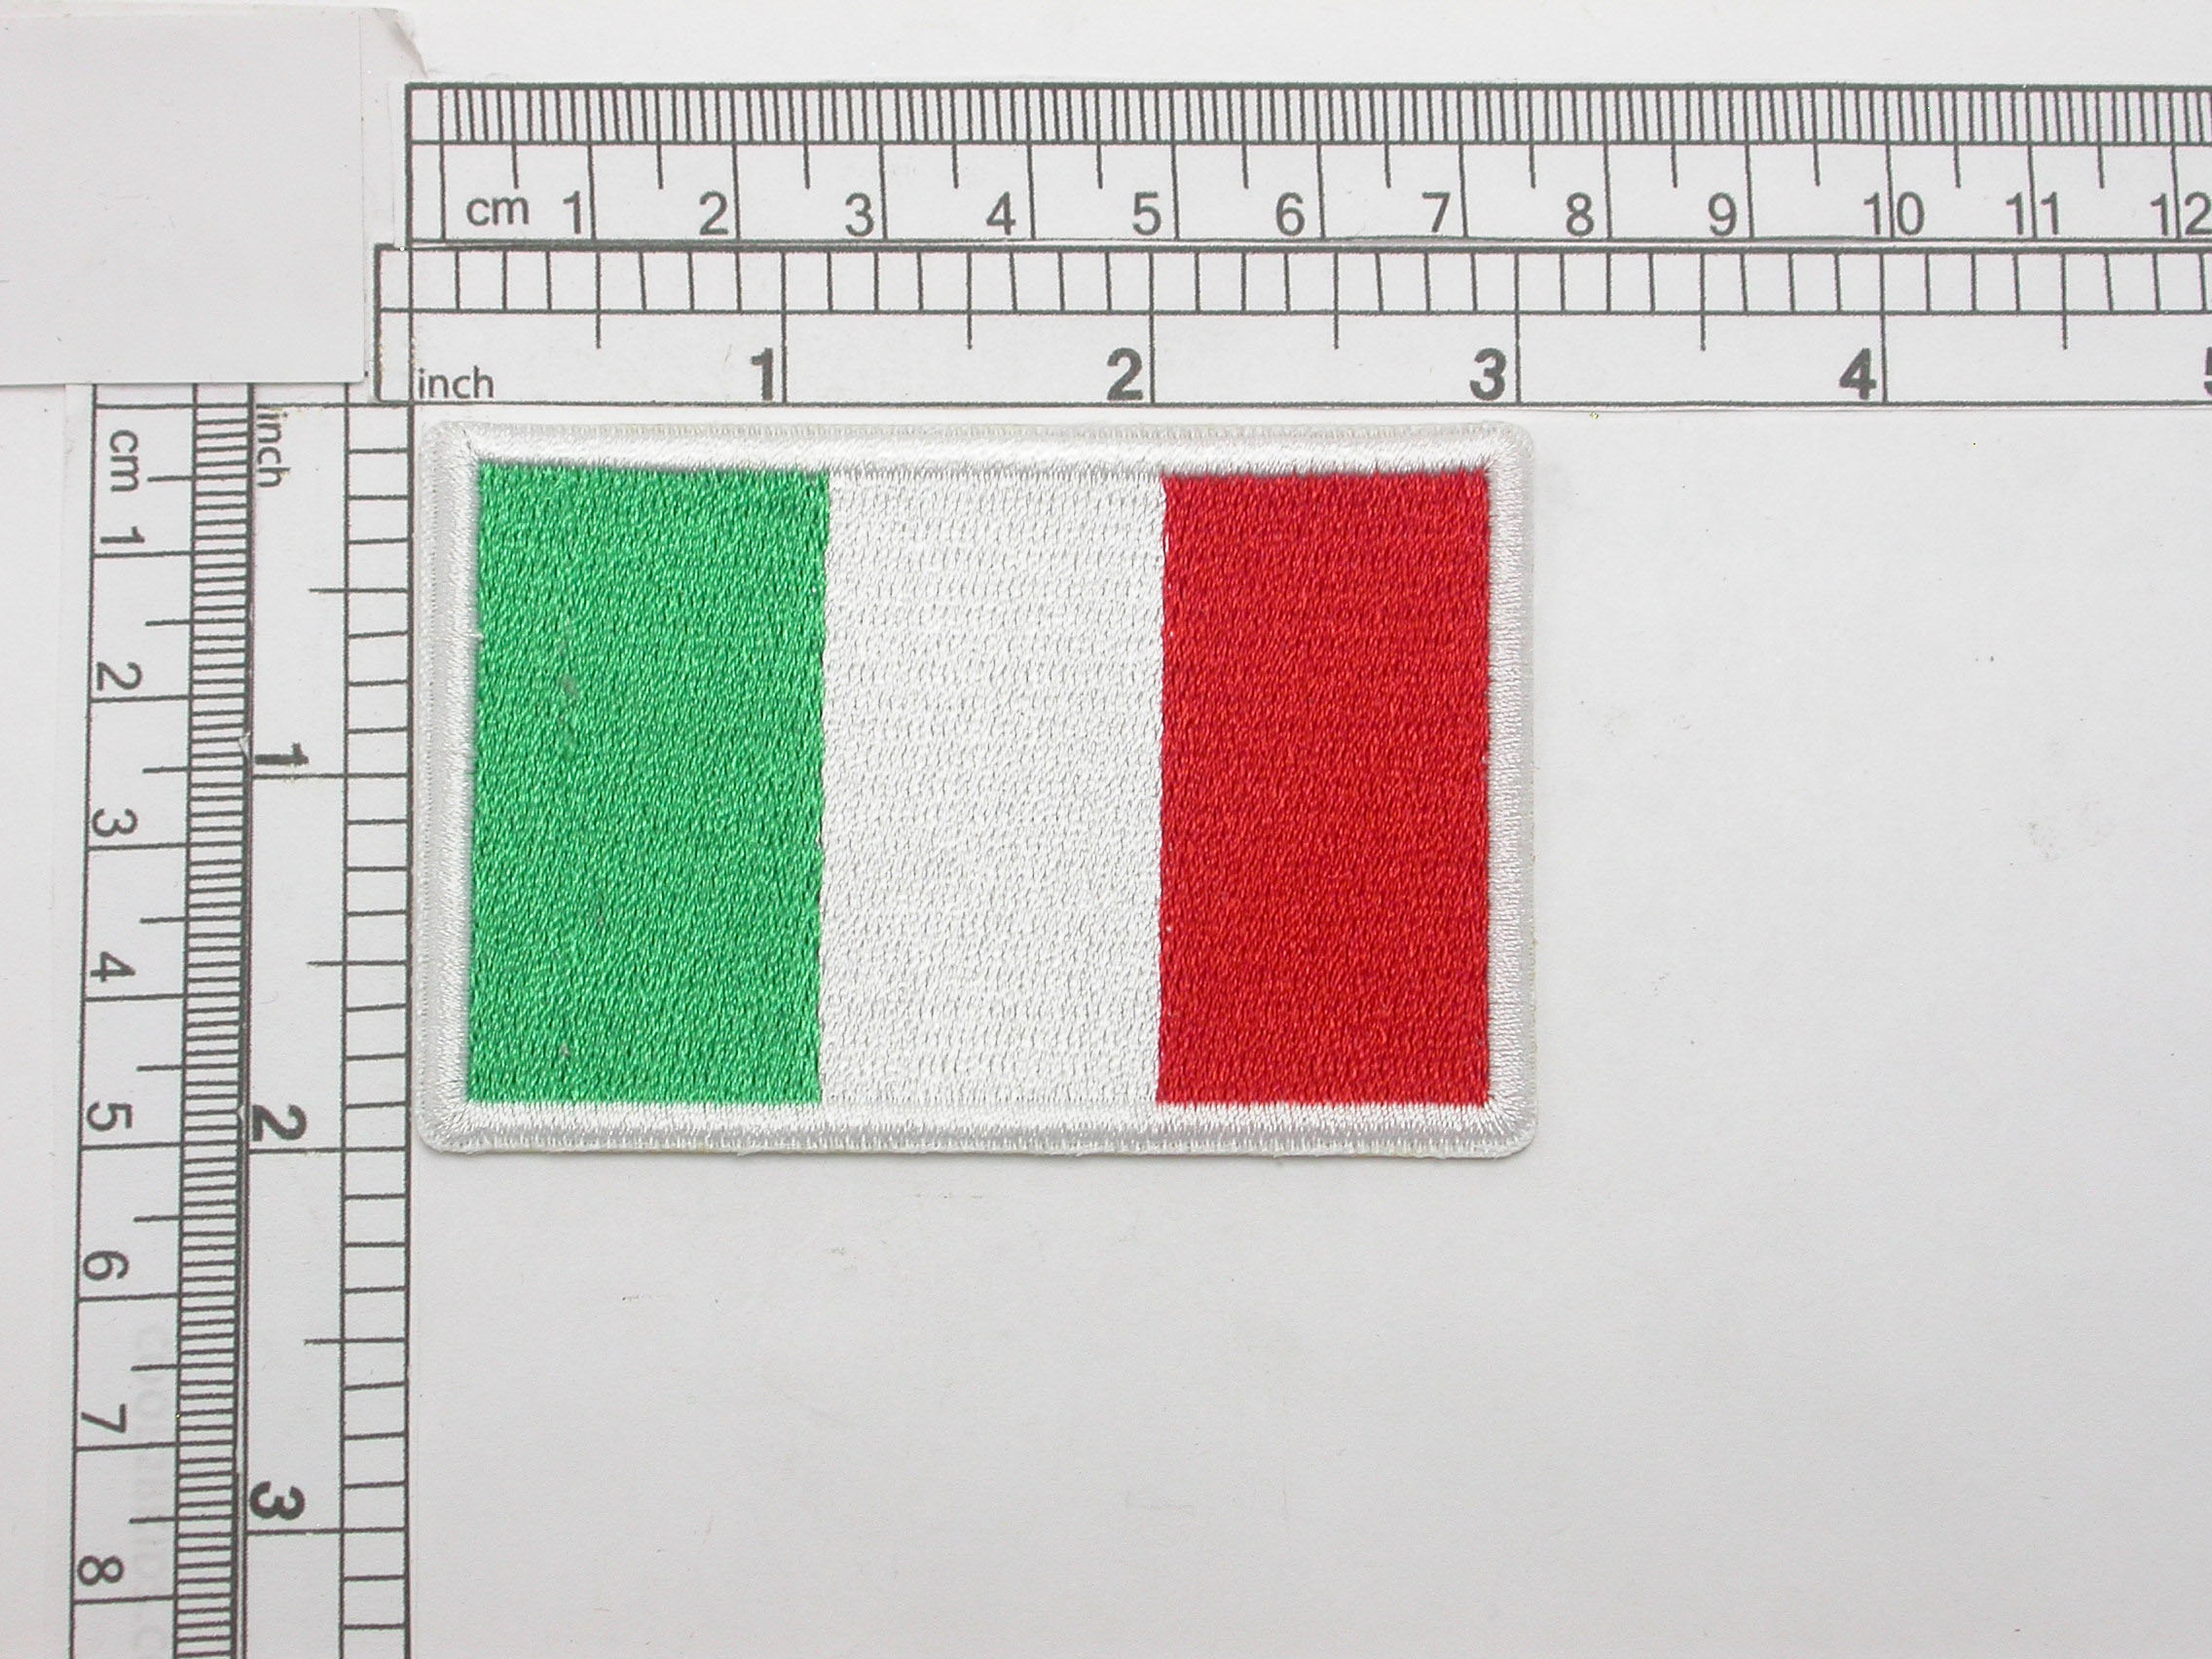 """Italy Flag Embroidered Iron On Patch Applique Italia  3"""" x 2""""  (76mm x 51mm) approx"""